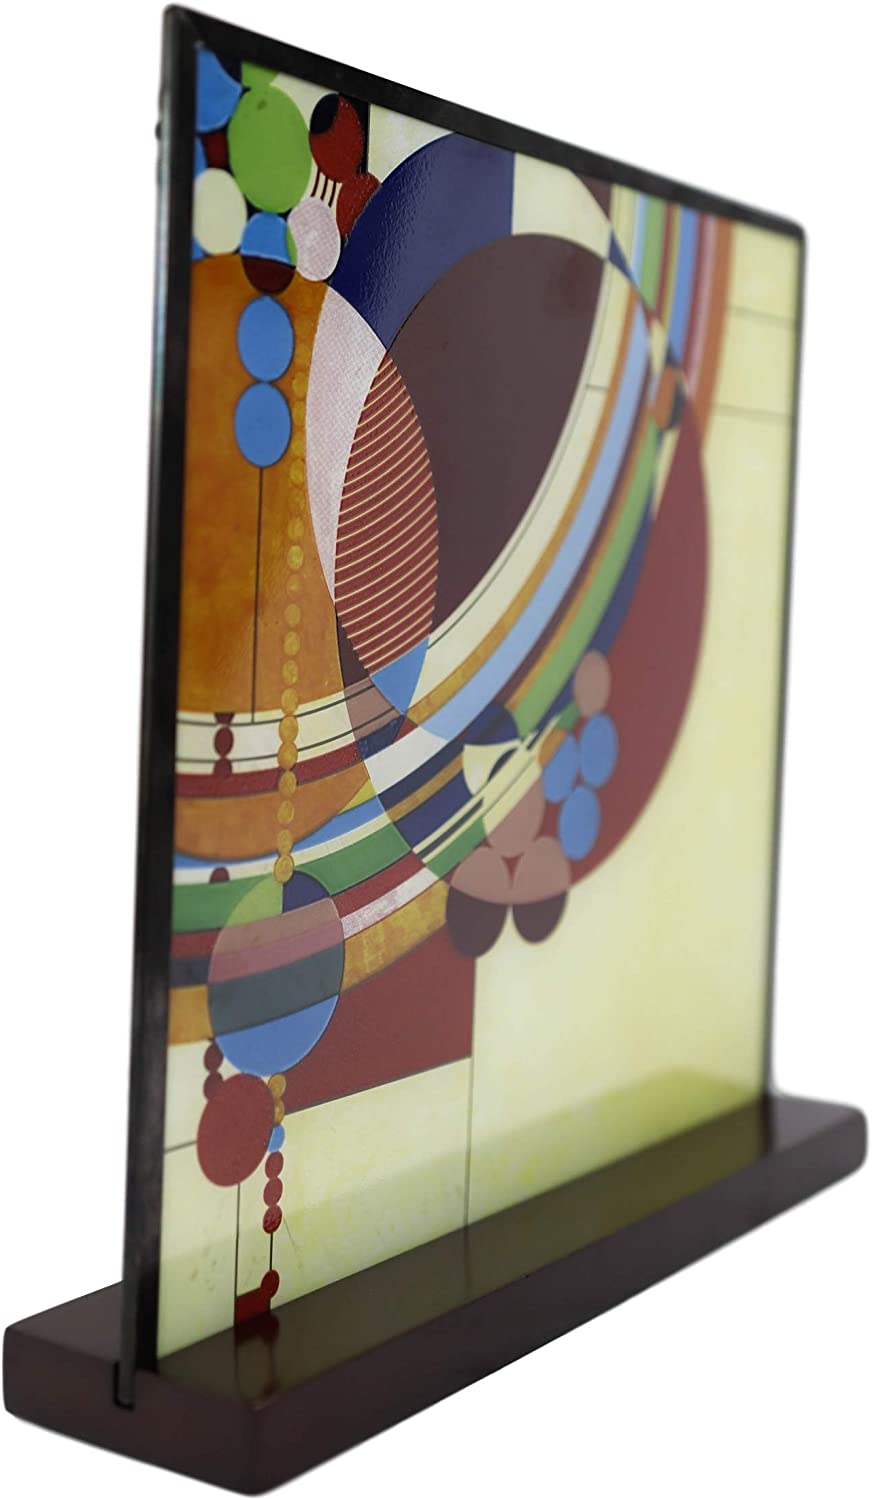 Ebros Frank Lloyd Wright March Balloons Celebration Stained Glass Art Panel Wall Hanging Decor Or Desktop Plaque with Wooden Base Stand 10 Tall